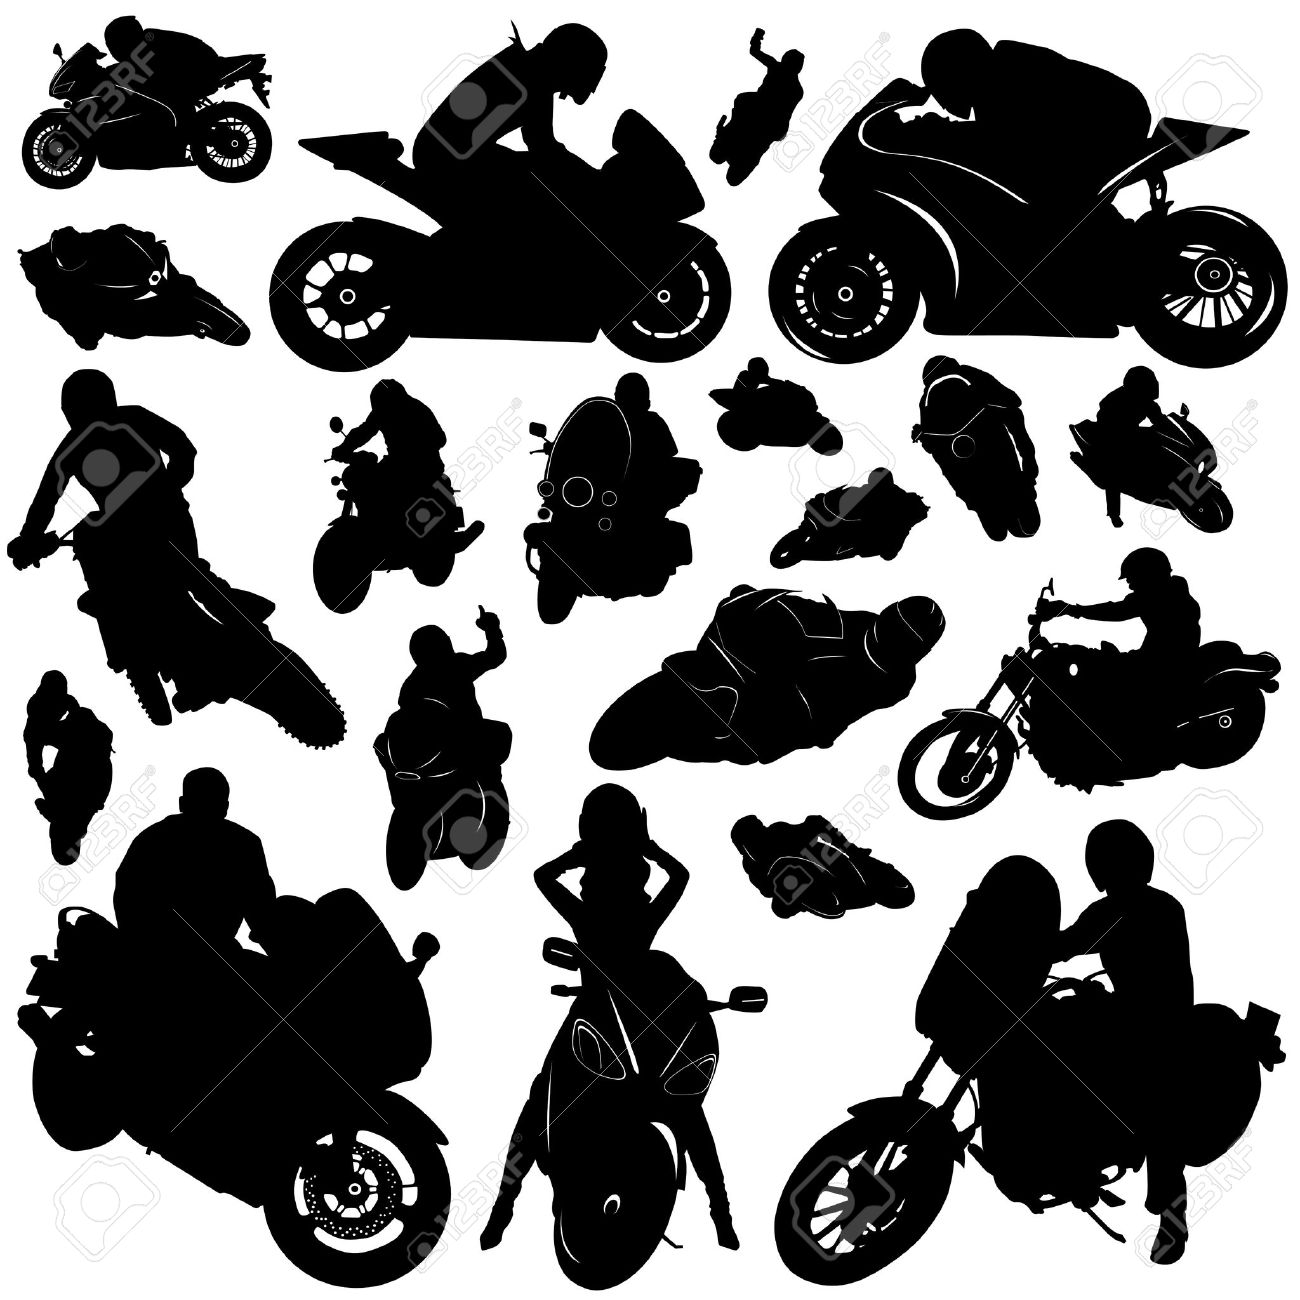 Collection Of Motorcycle And Rider Vecto-collection of motorcycle and rider vector Stock Vector - 9592750-8